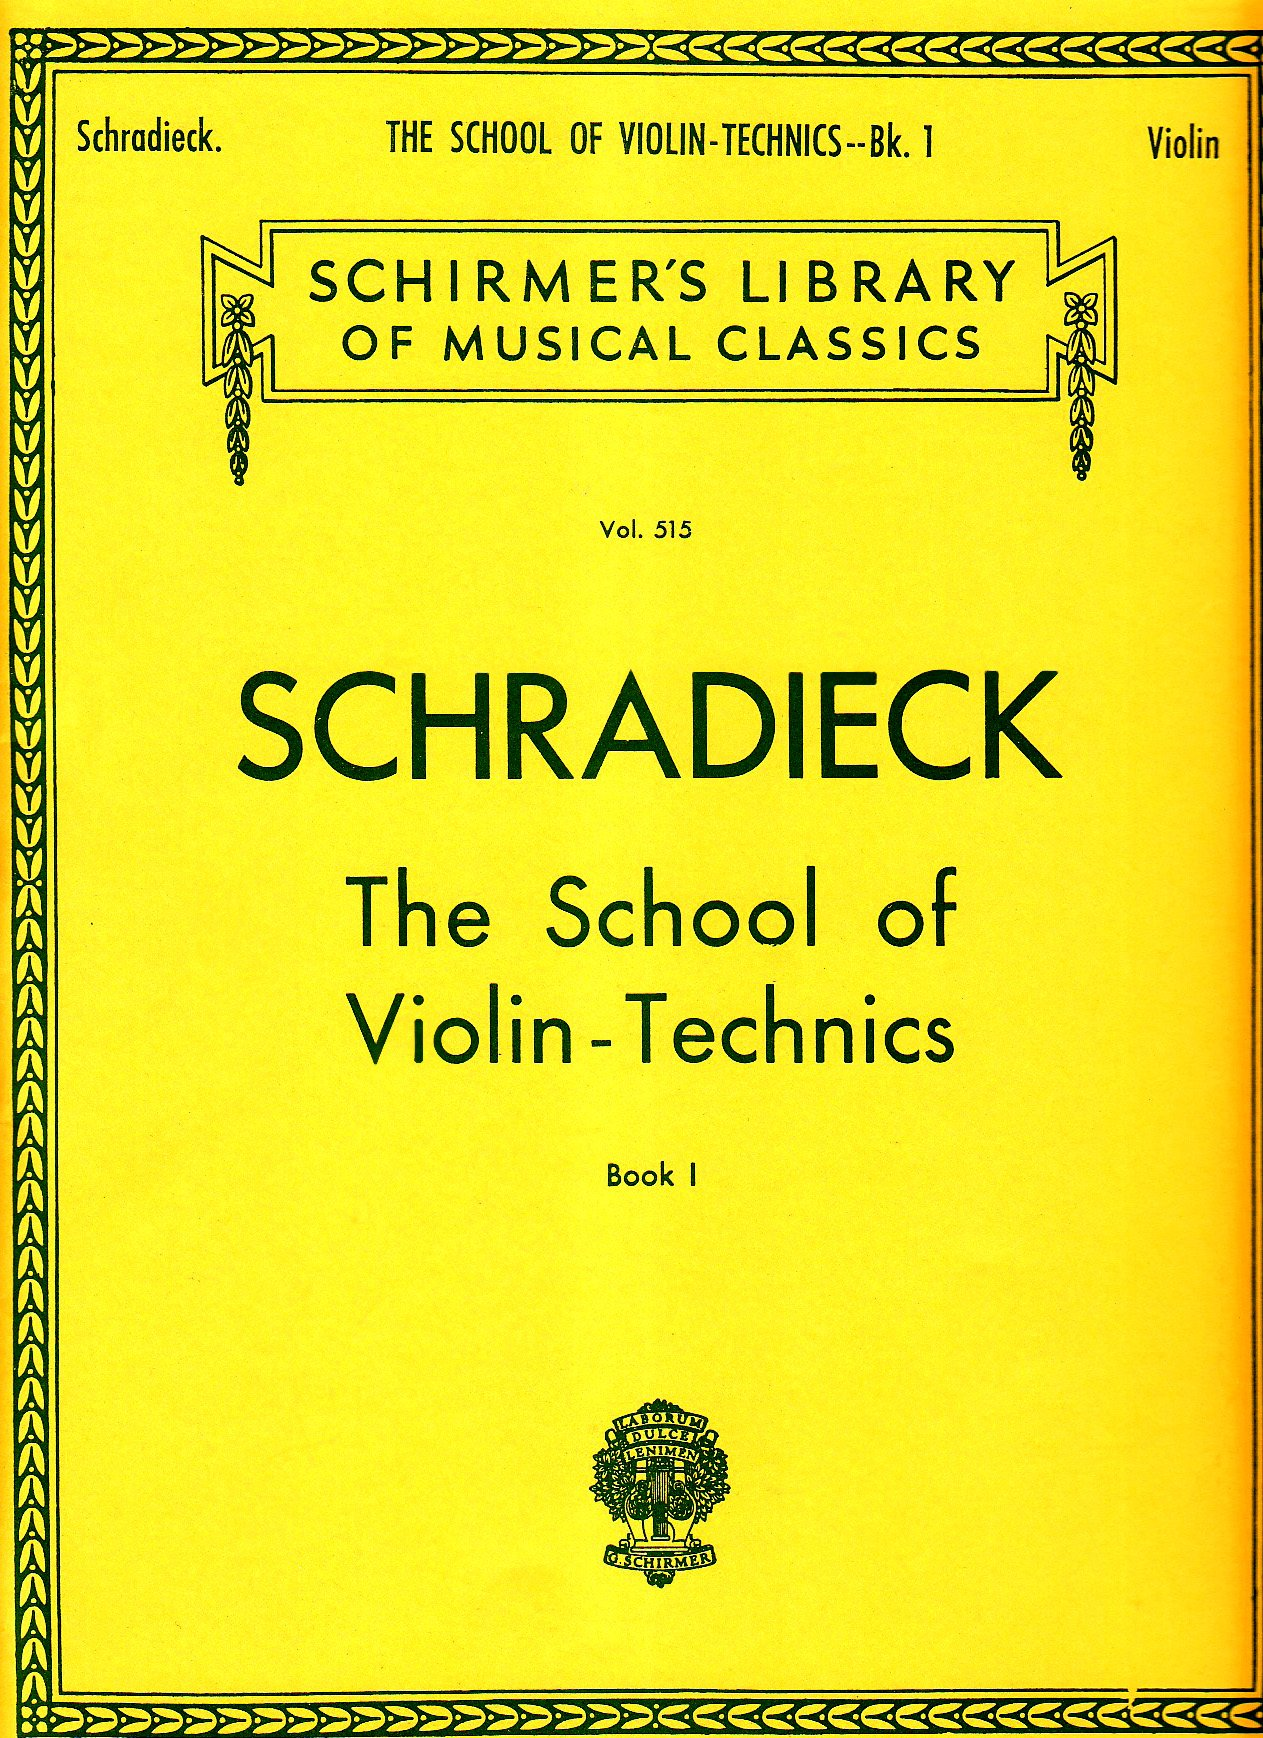 Amazon schradieck the school of violin technics book 1 amazon schradieck the school of violin technics book 1 exercises for promoting dexterity 9780793554331 henry schradieck books fandeluxe Images